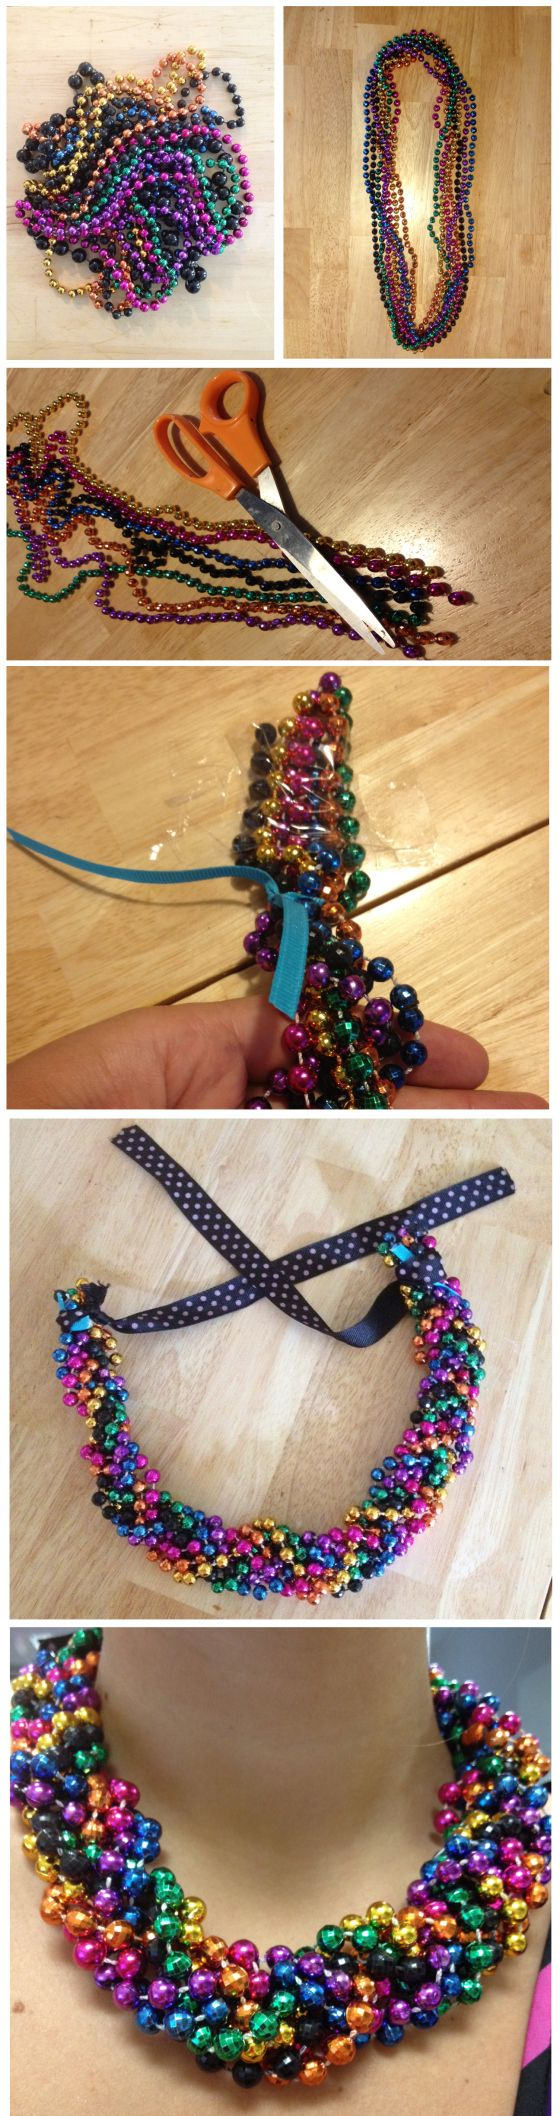 DIY Braided Mardi Gras Bead Statement Necklave